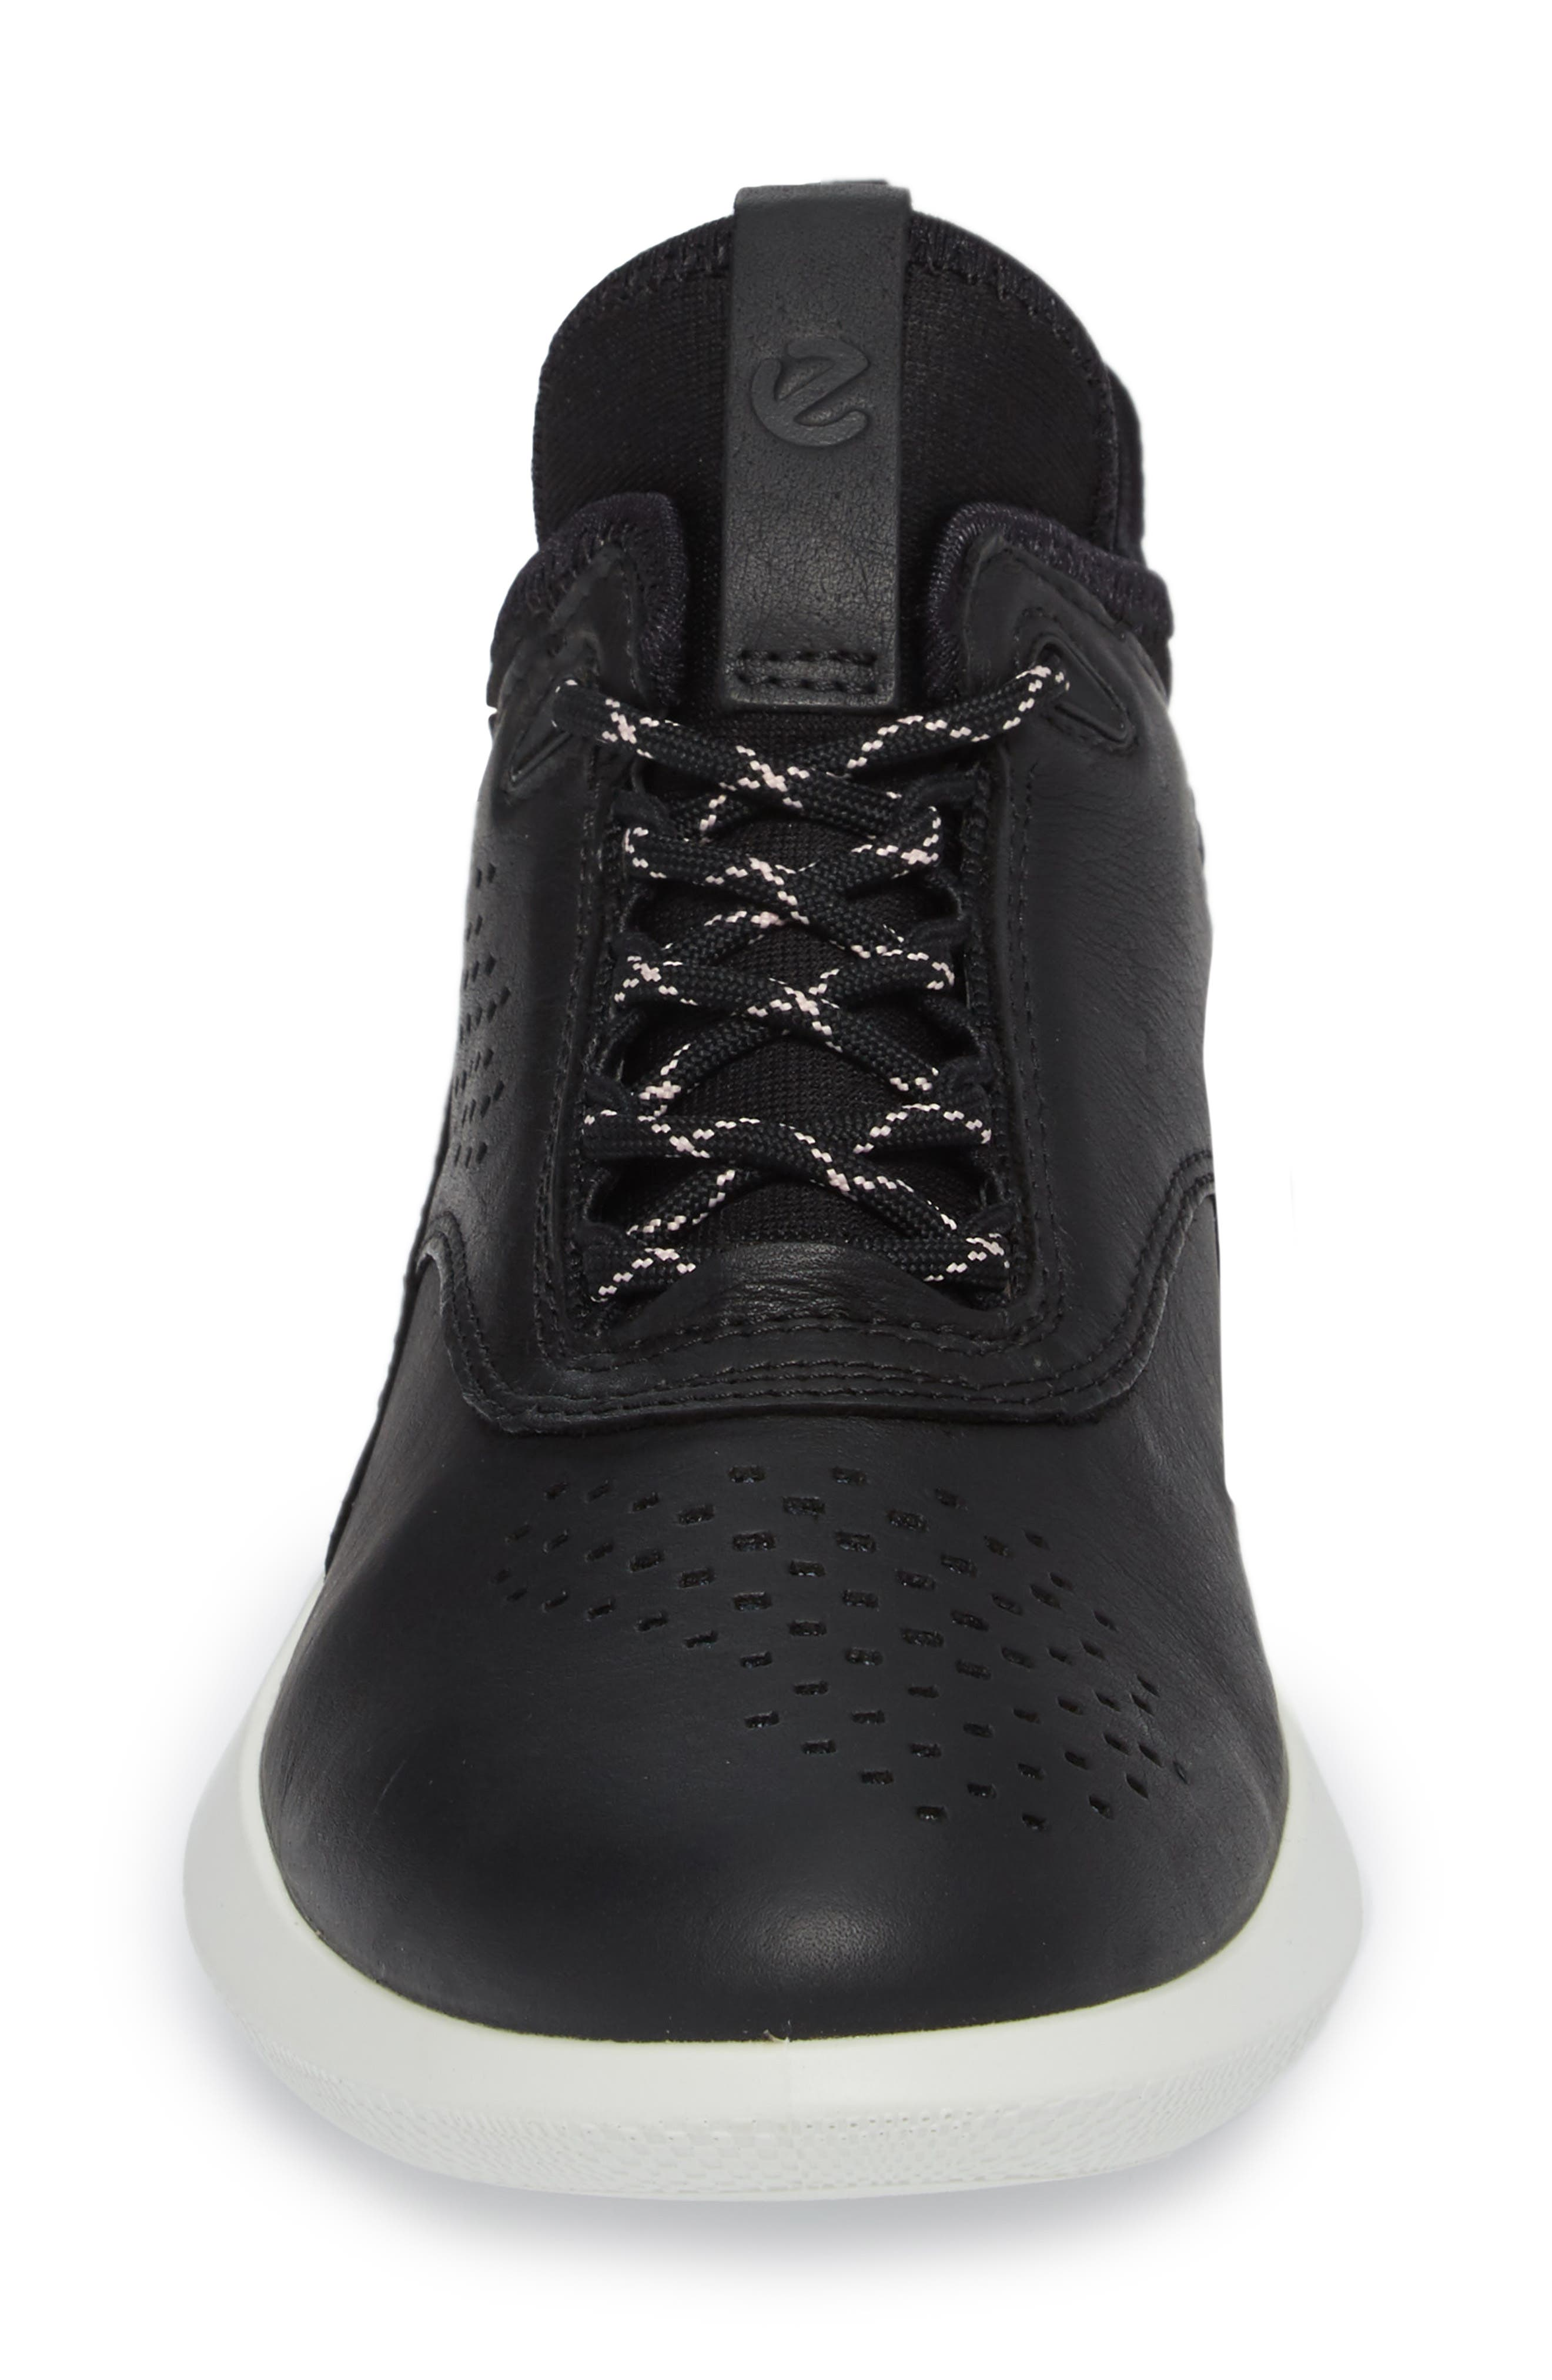 Scinapse Sneaker,                             Alternate thumbnail 4, color,                             Black Leather